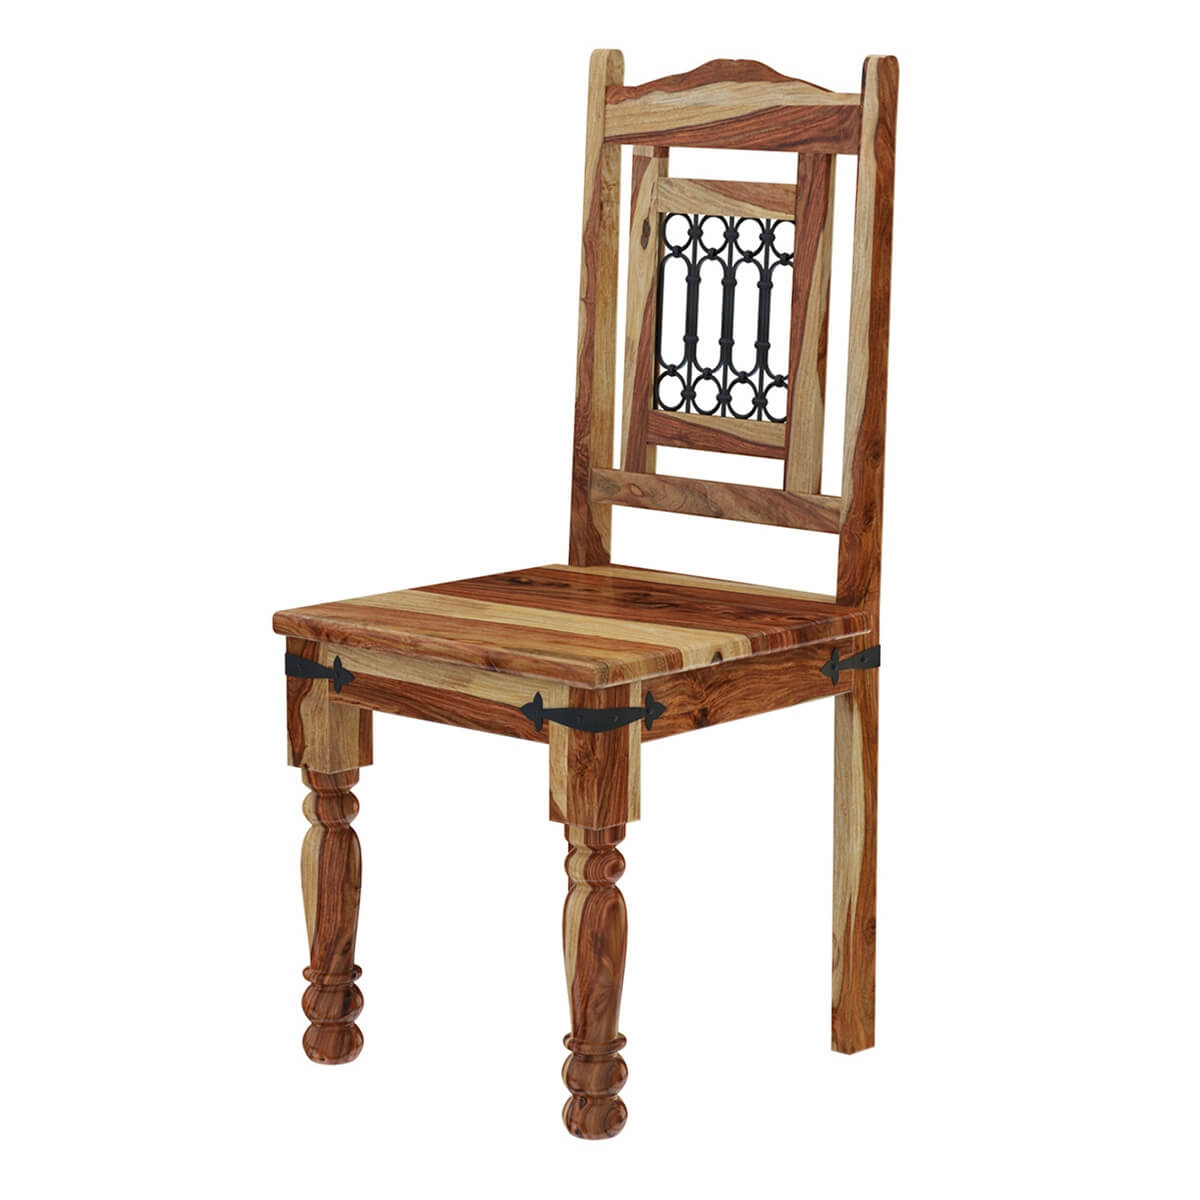 Dining Chairs Kitchen Chairs: Vandana Solid Wood & Wrought Iron Rustic Kitchen Dining Chair